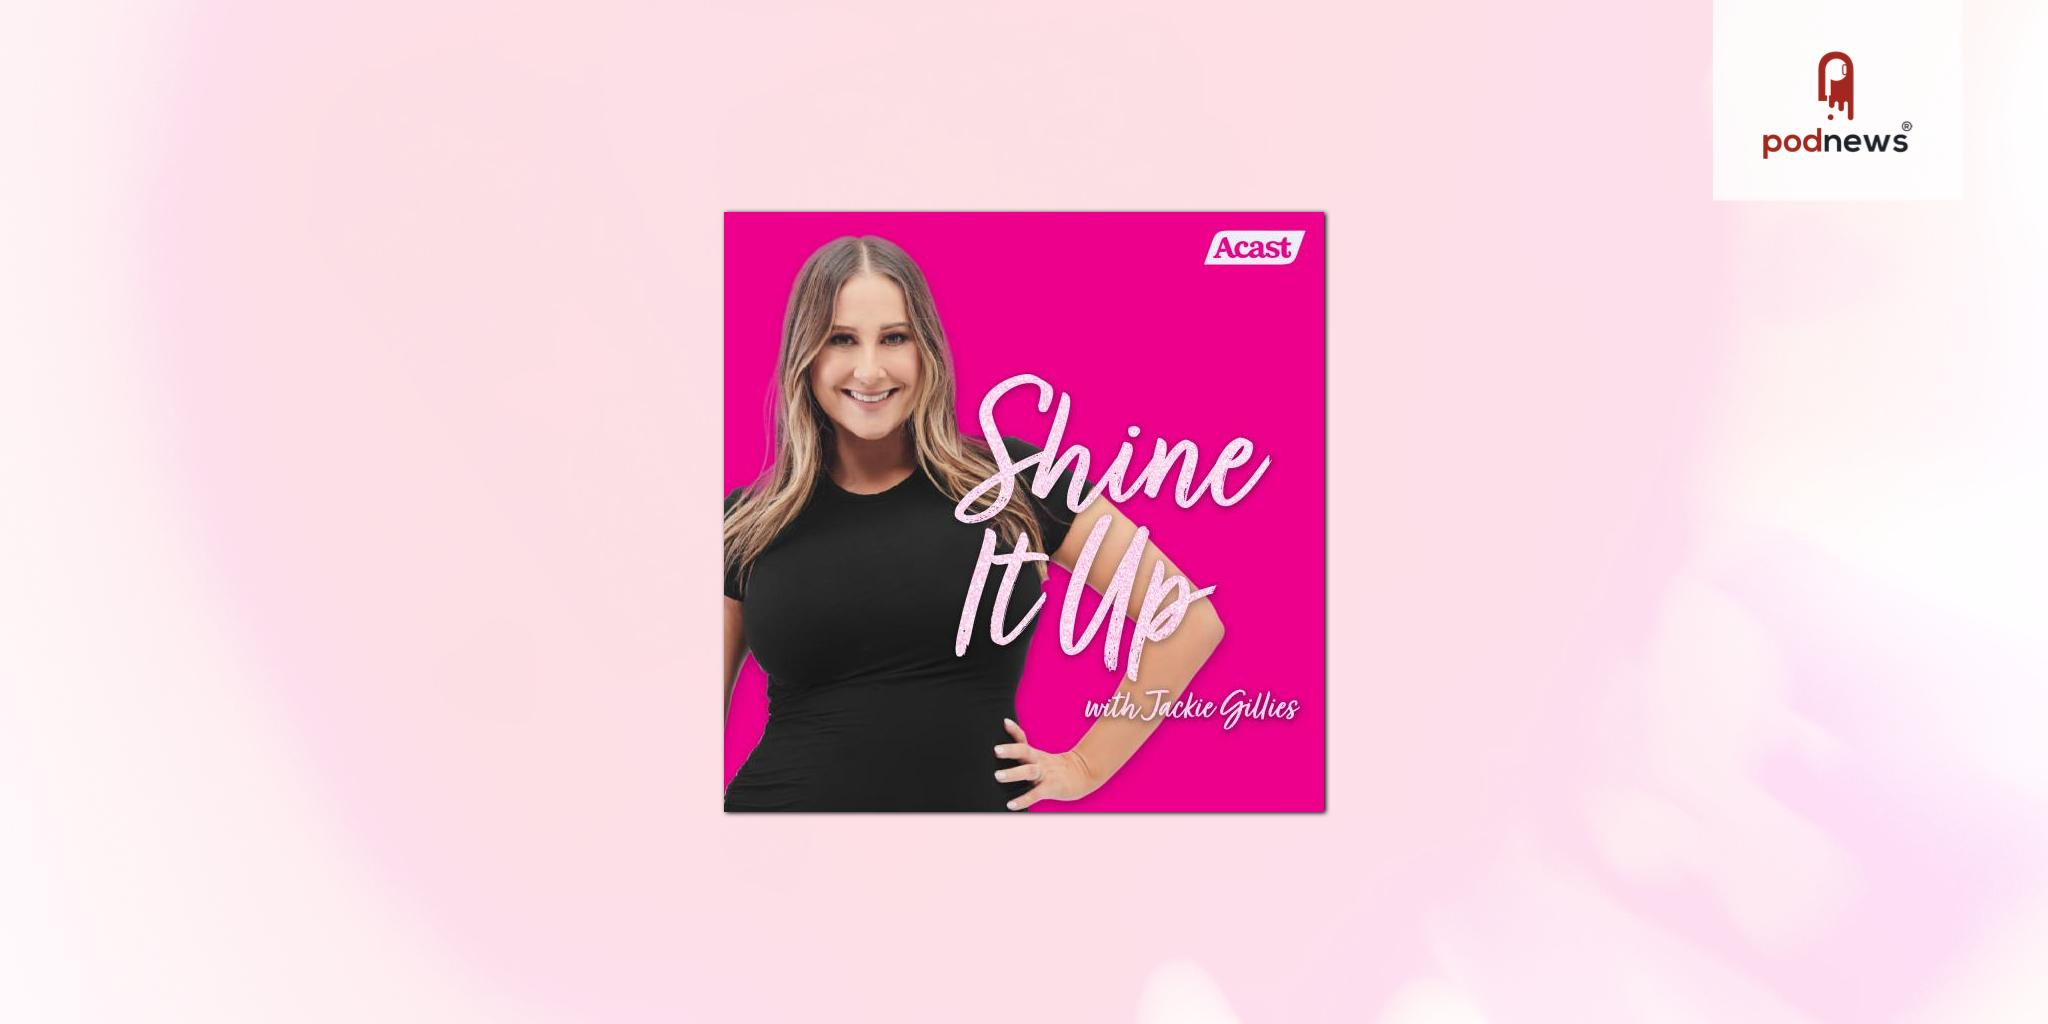 It's time to Shine It Up, as Jackie Gillies joins the Acast Creator Network